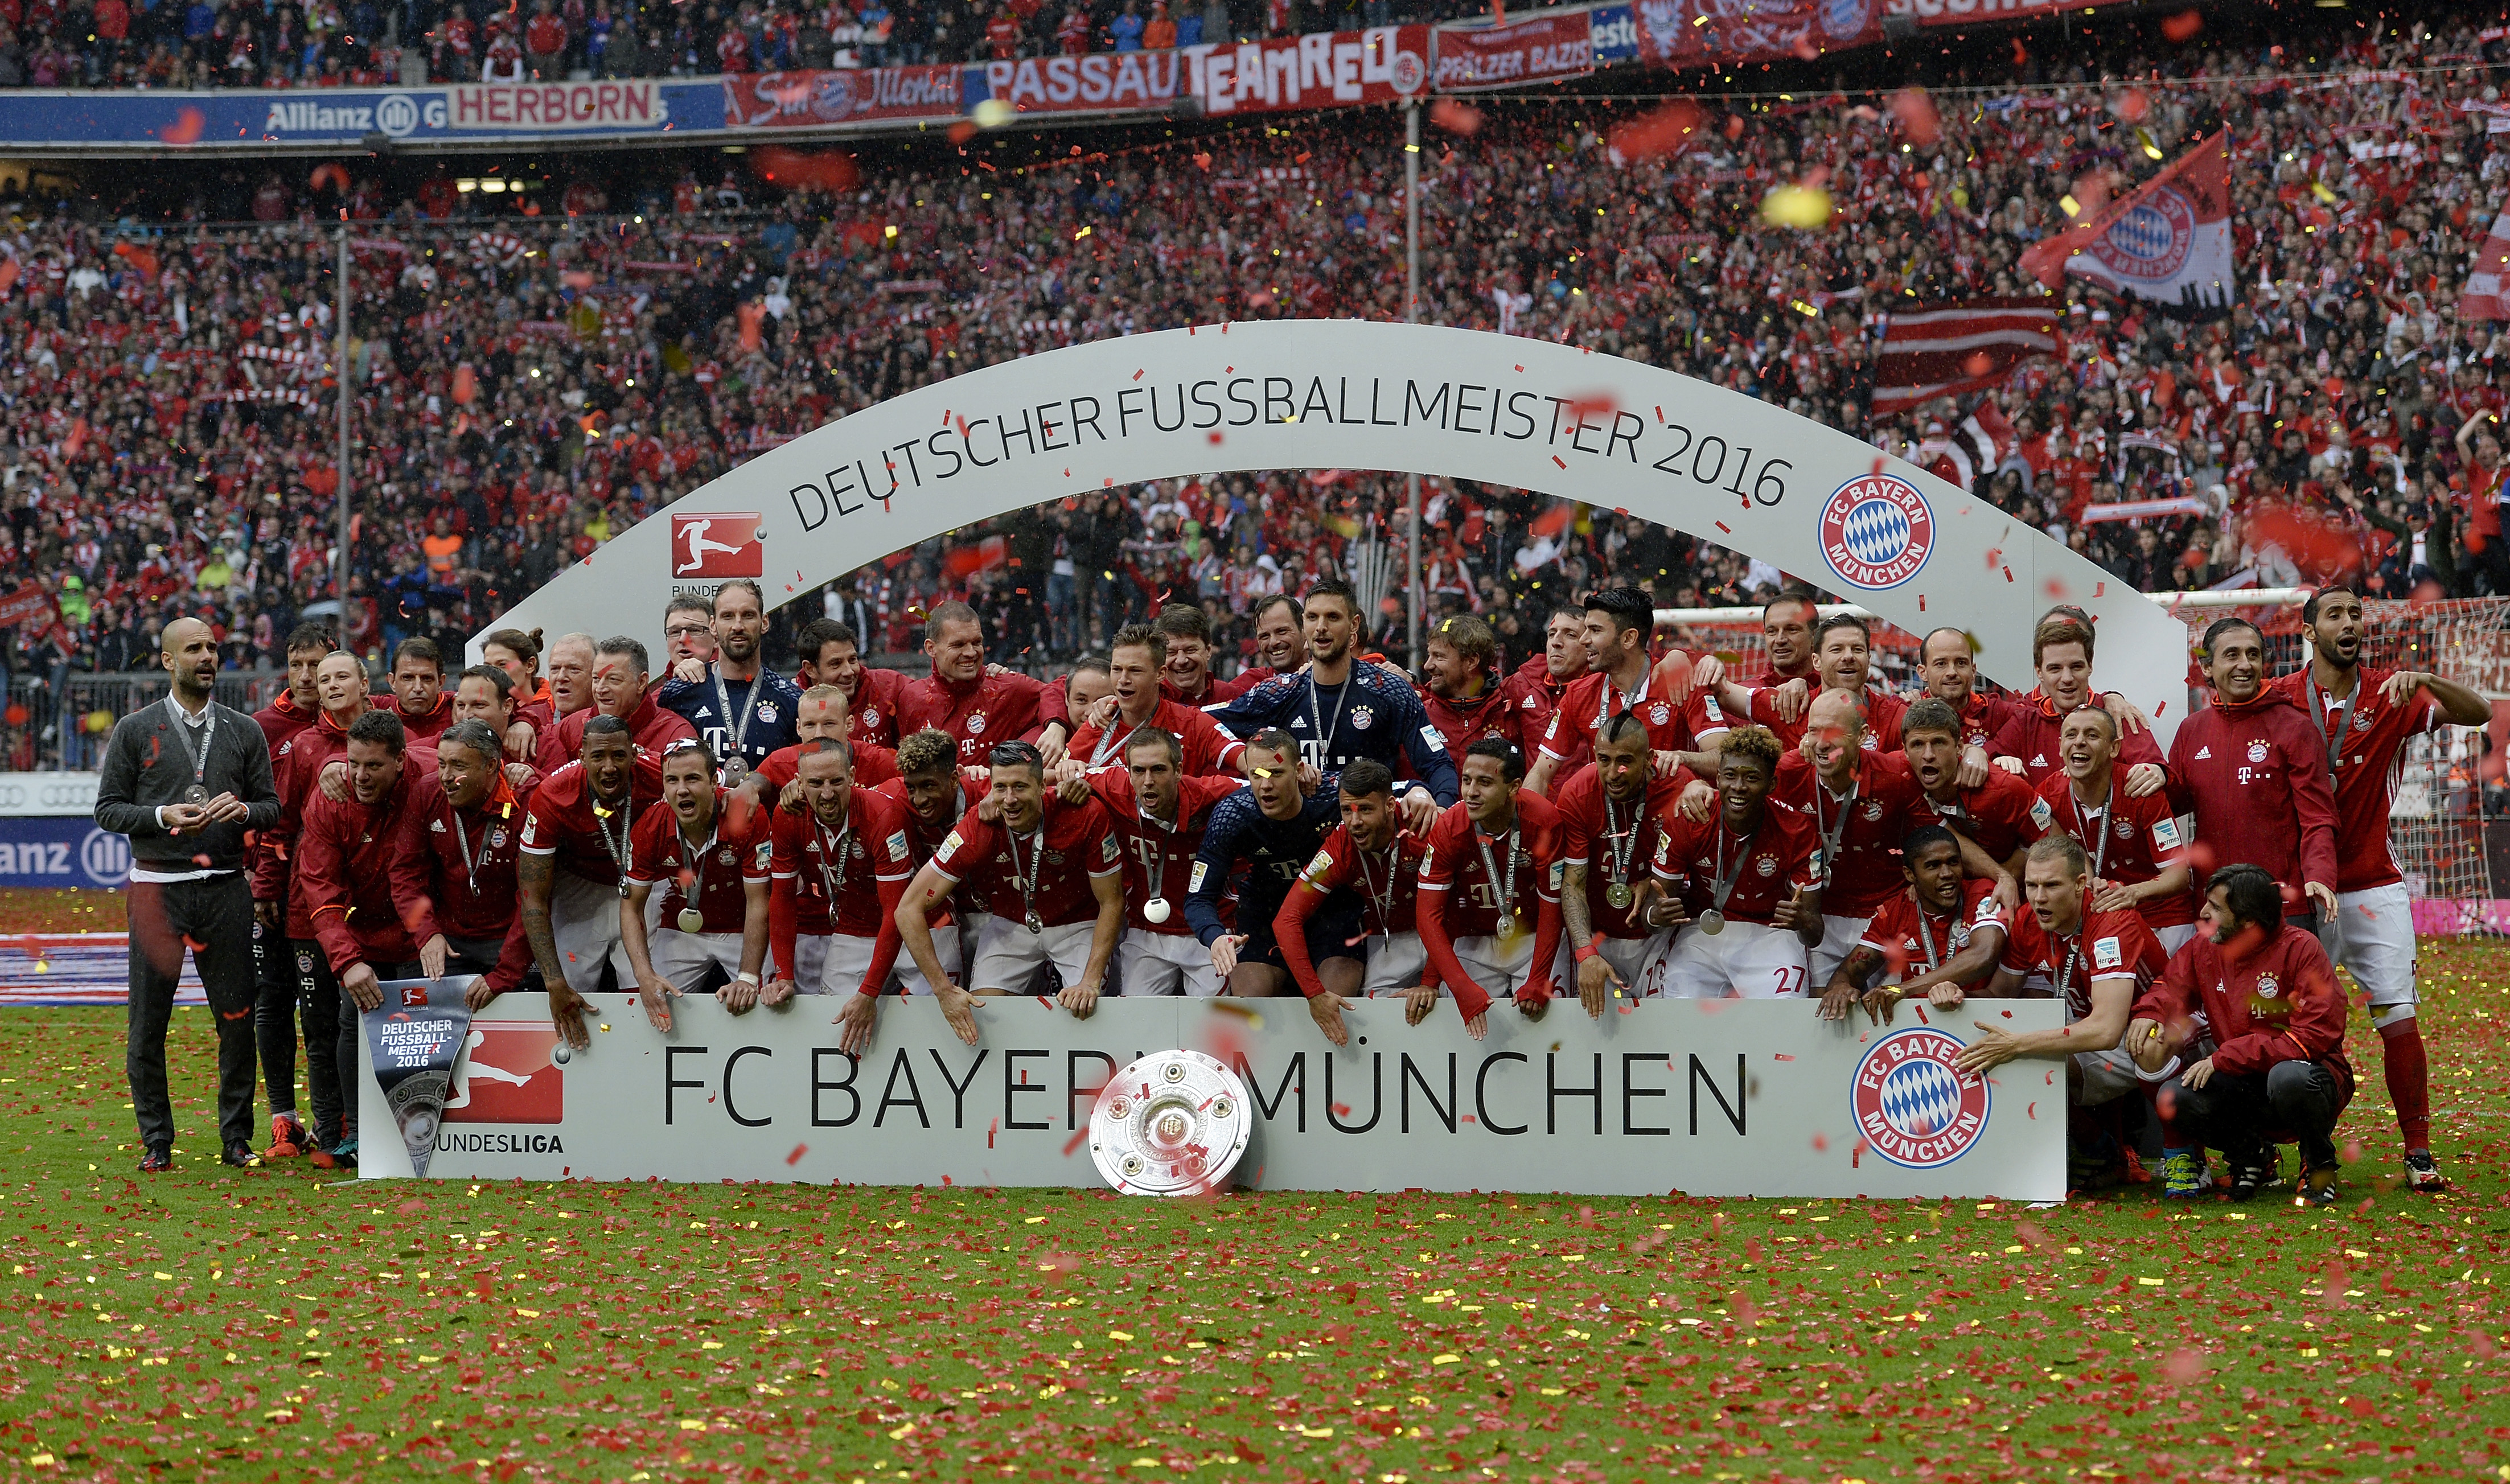 MUNICH, GERMANY - MAY 14: The players of FC Bayern Muenchen celebrate with the Meisterschale after the Bundesliga match between FC Bayern Muenchen and Hannover 96 at Allianz Arena on May 14, 2016 in Munich, Germany. (Photo by Daniel Kopatsch/Getty Images For MAN)